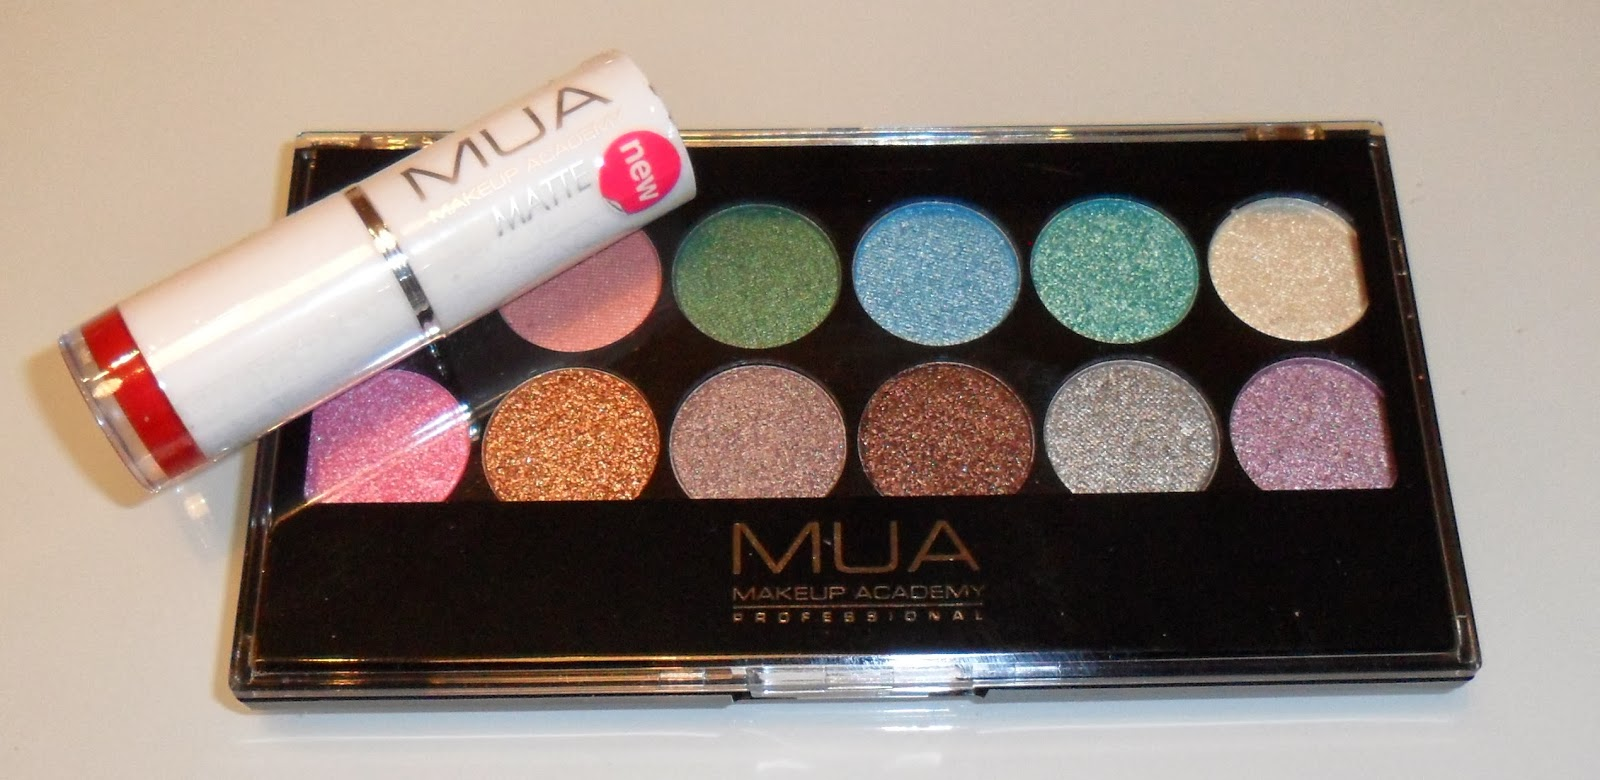 MUA Glitterball Eyeshadow Palette, Eyeshadow Palette, Make-Up, Eyeshadow, Christmas Competitions